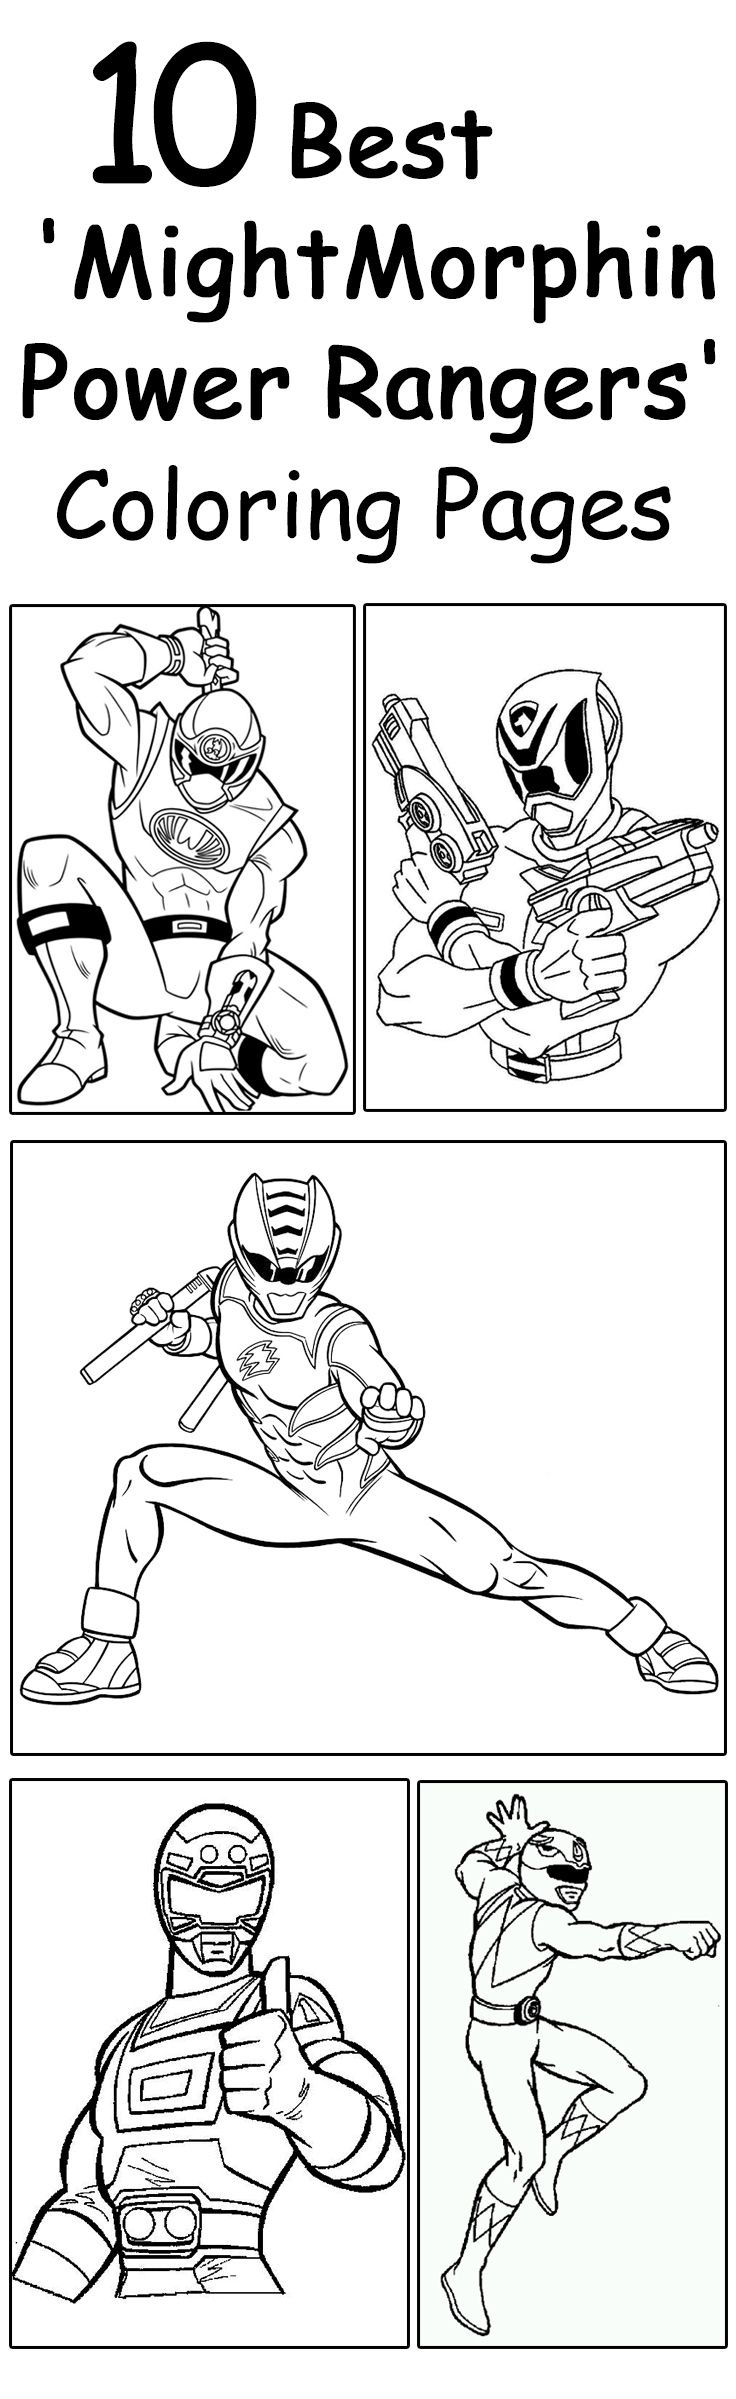 Free online coloring pages of power rangers - Top 25 Free Printable Mighty Morphin Power Rangers Coloring Pages Online